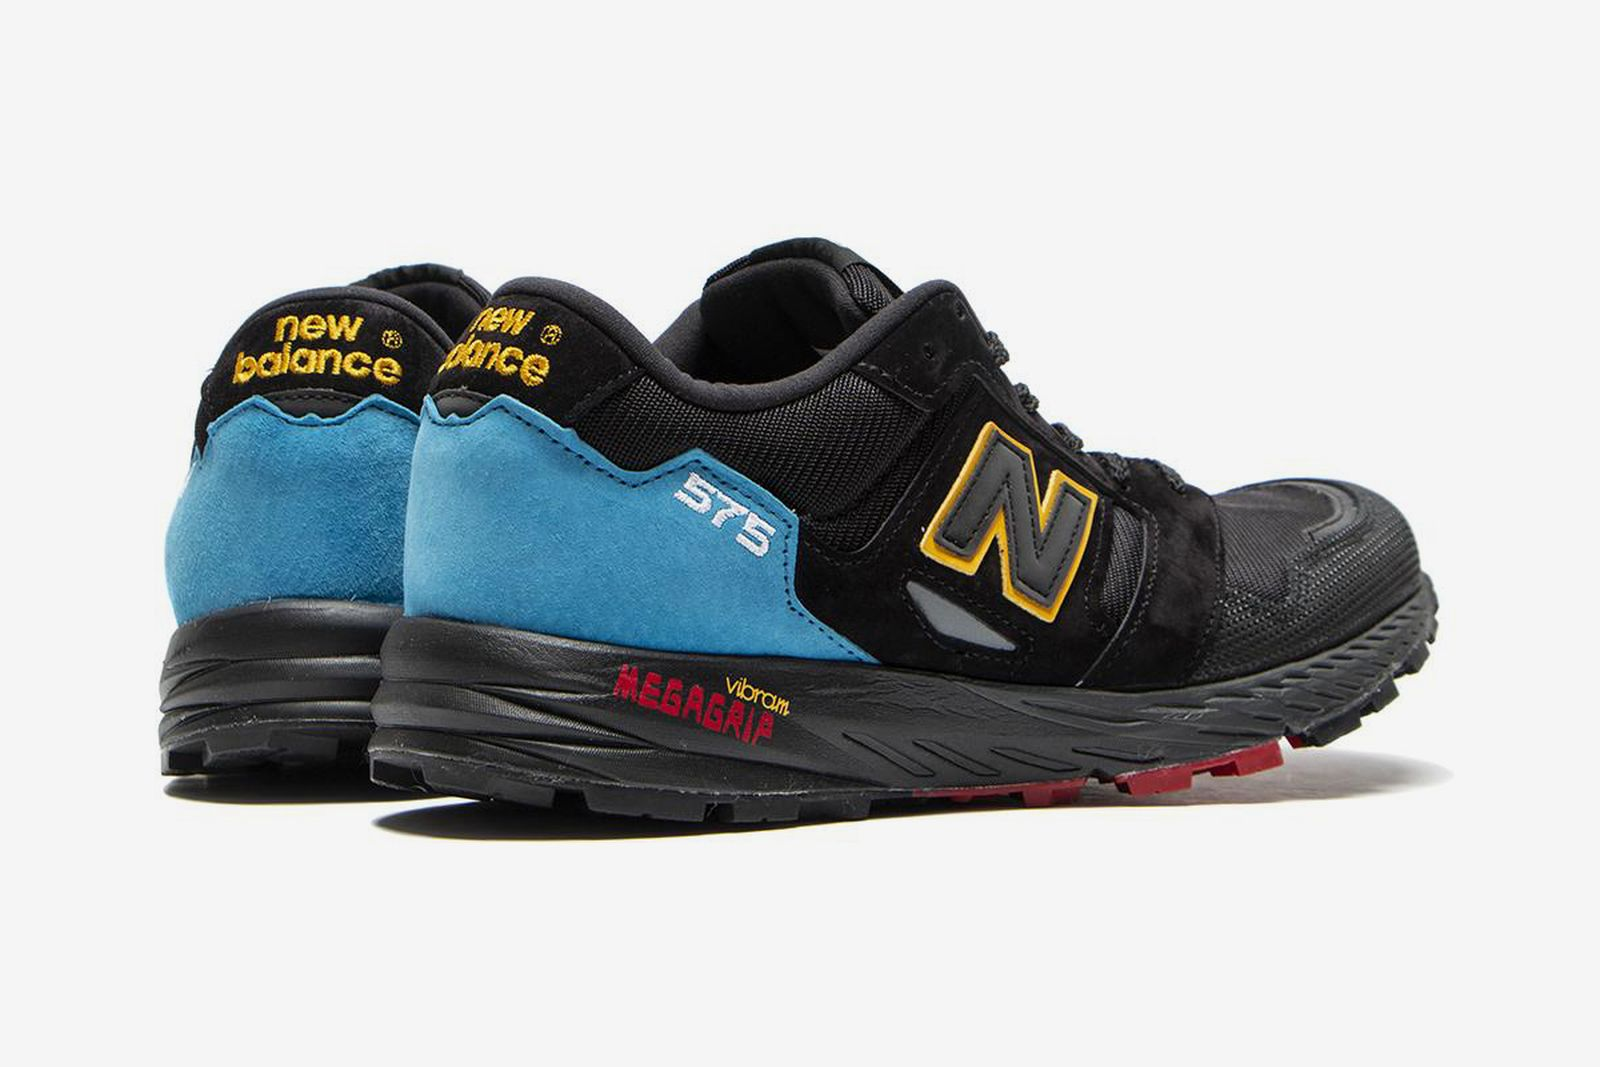 New Balance Made in England 1500 & 575: Buy Them Here